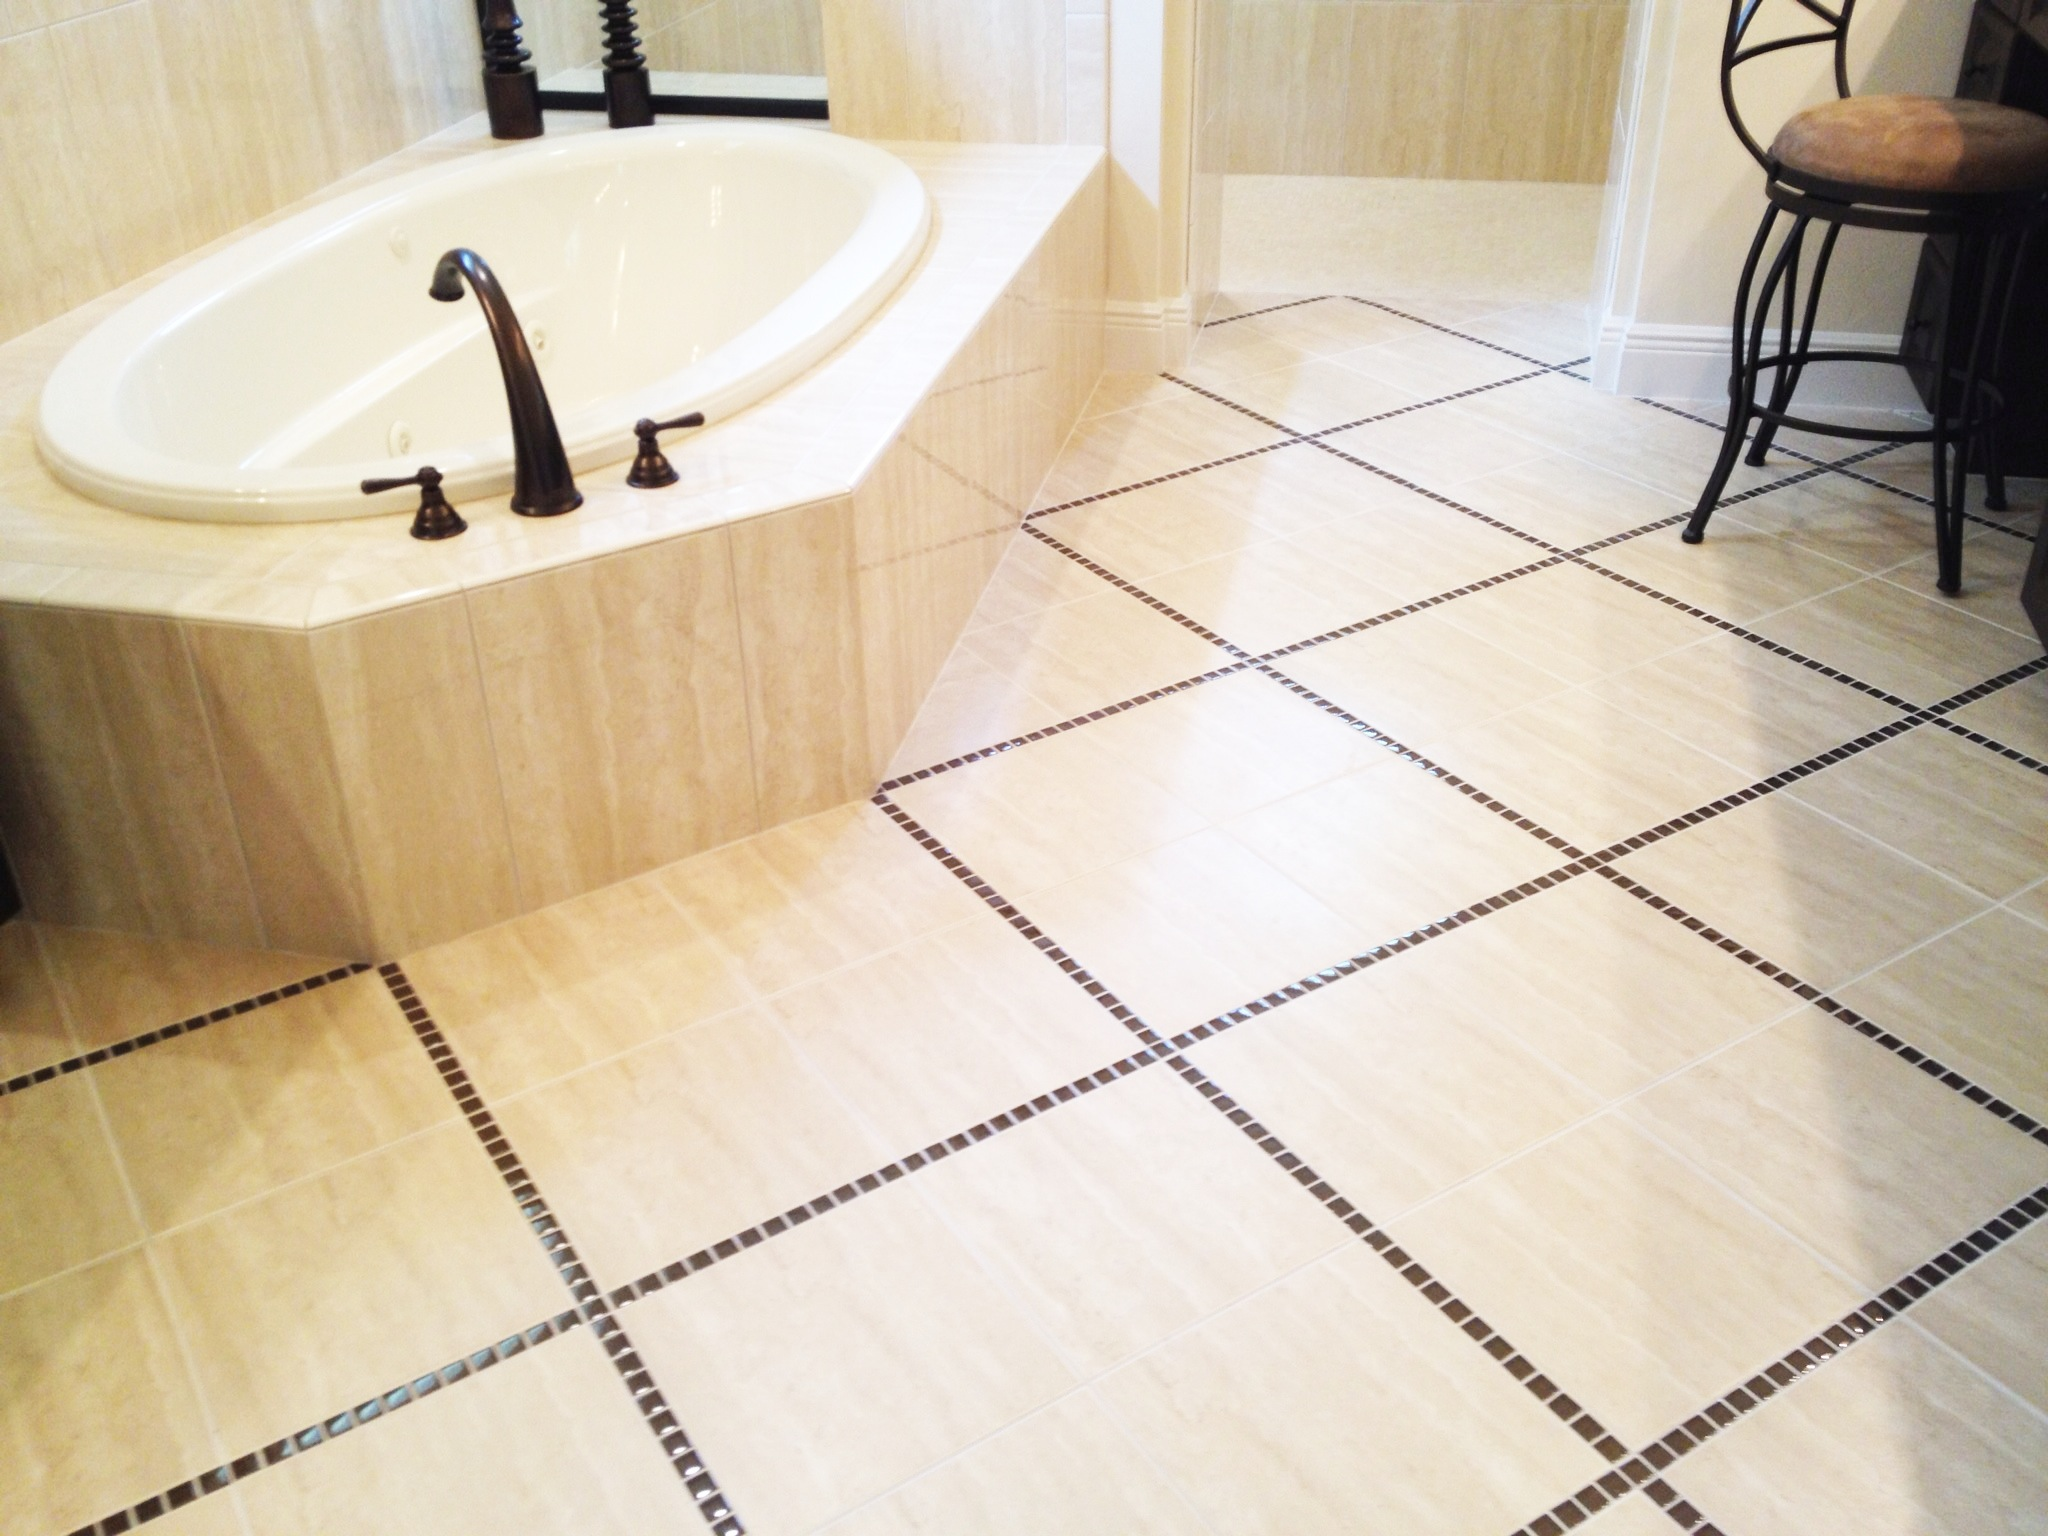 Building Trends in Gainesville – Tile Tuesday